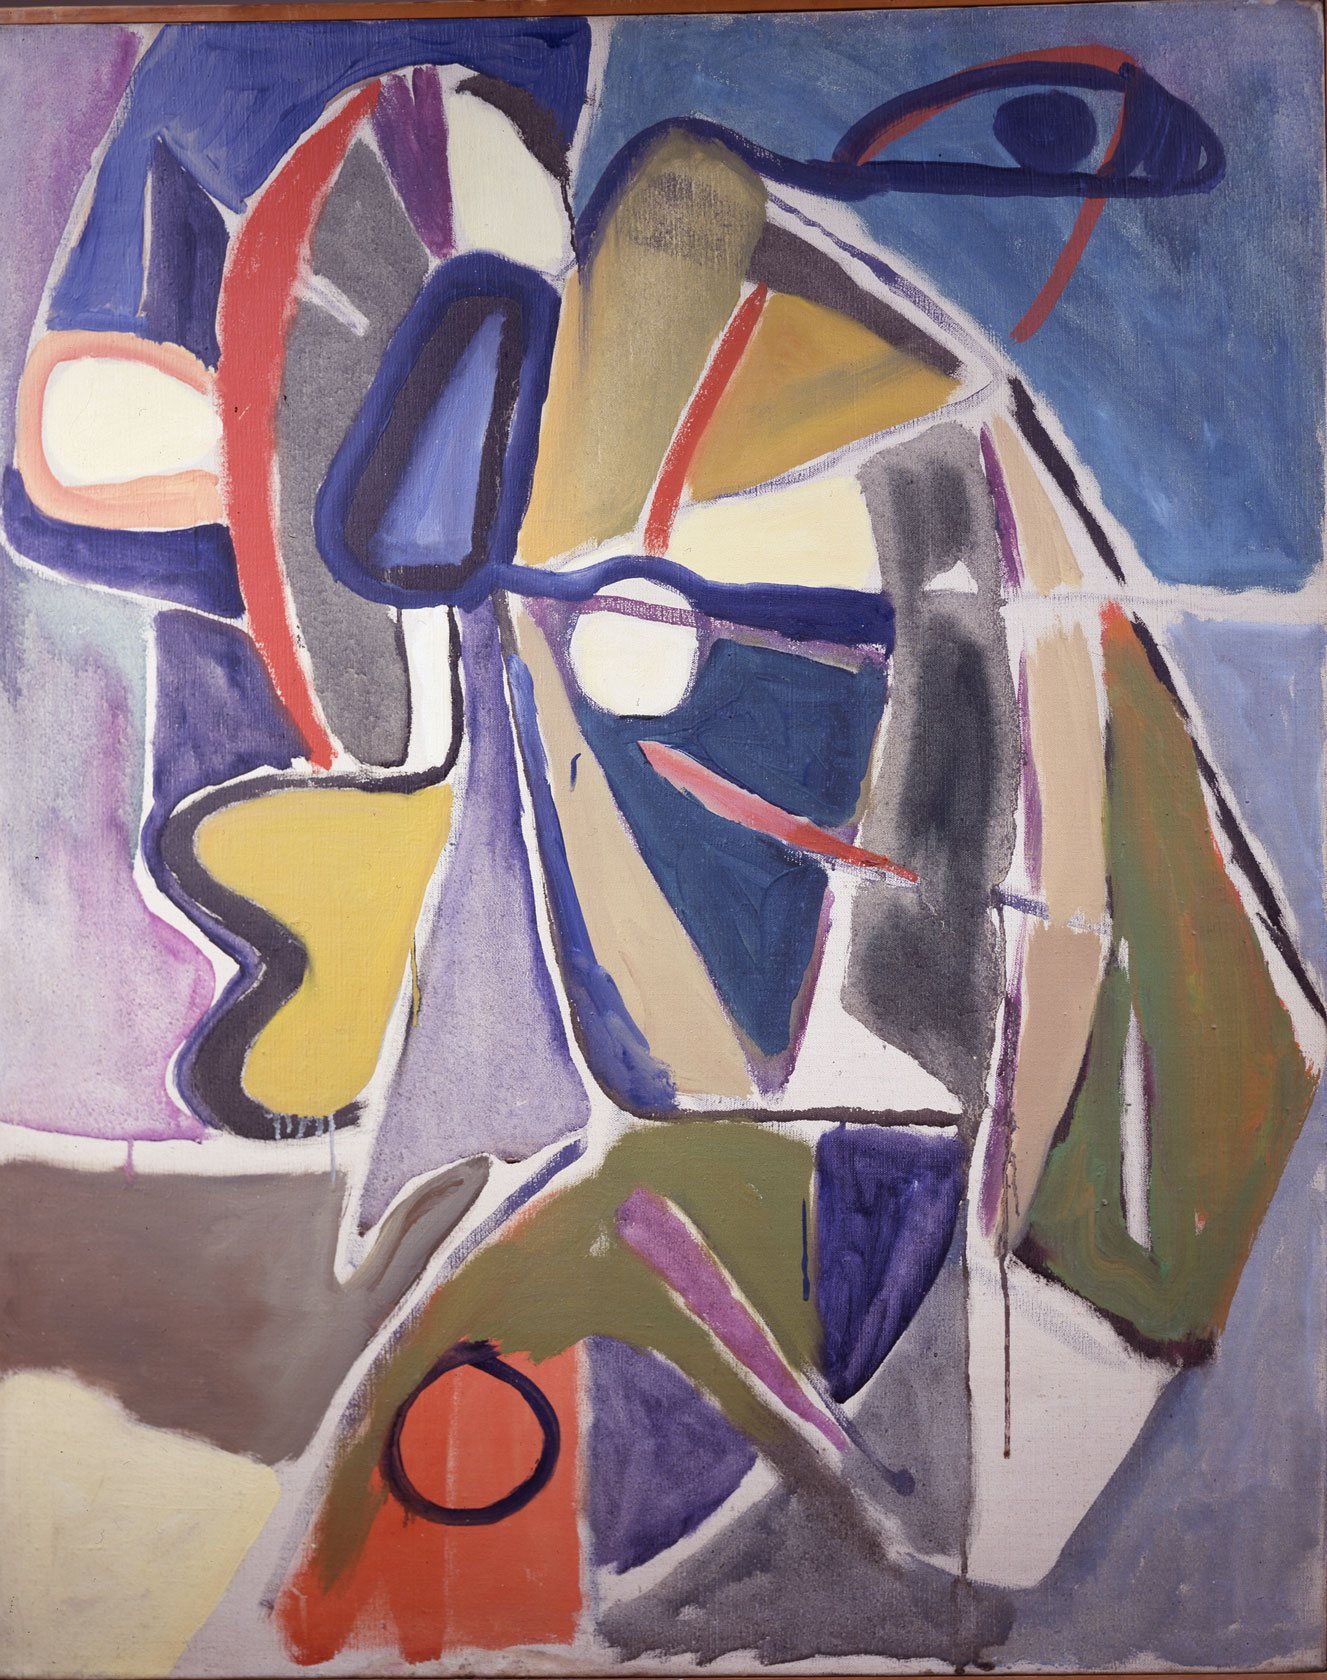 Van Velde Bram,Composition,1949